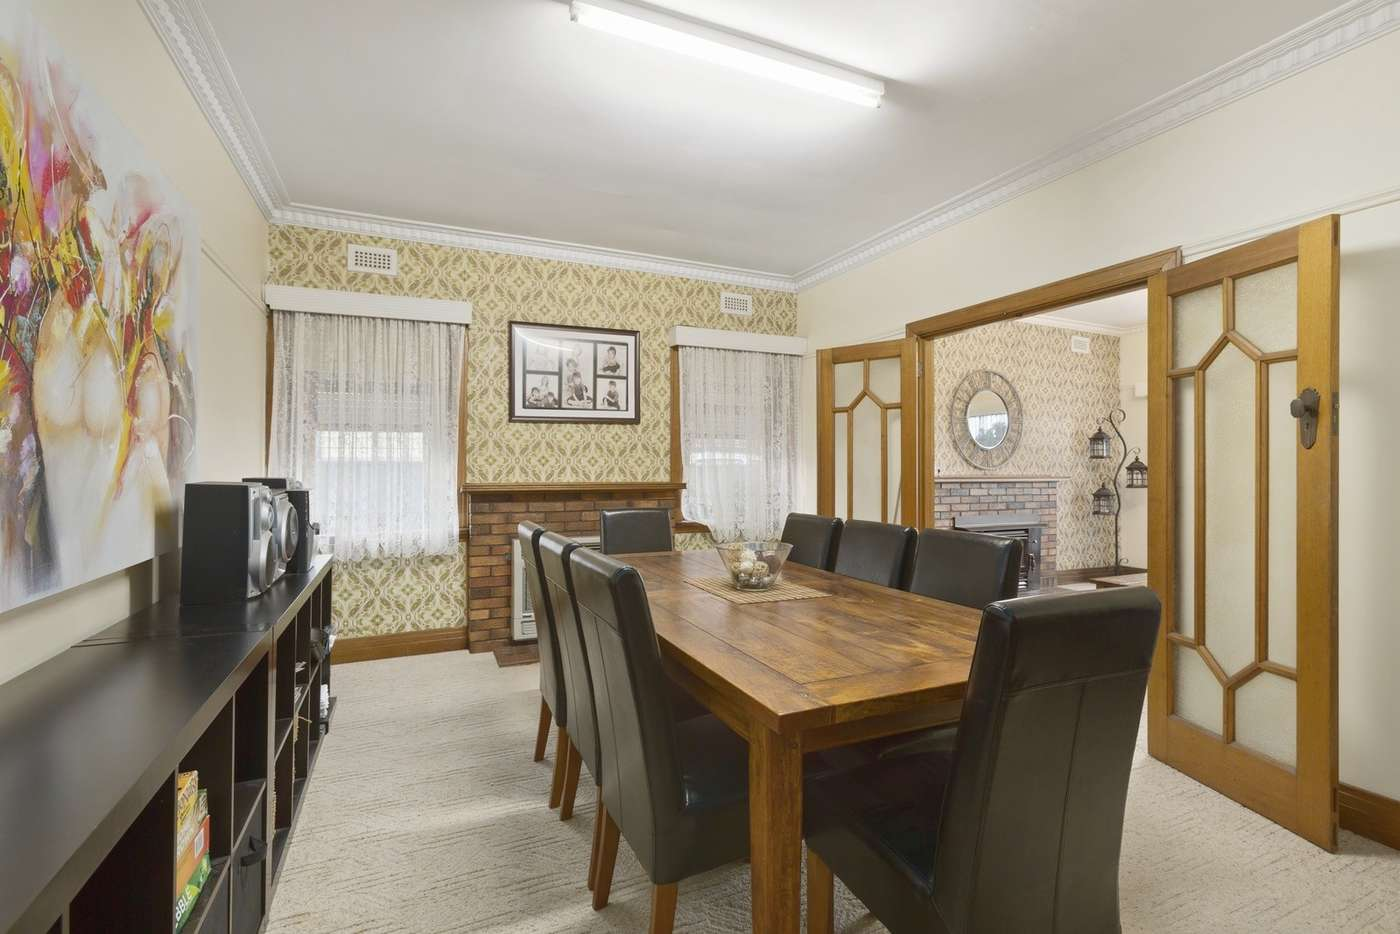 Fifth view of Homely house listing, 416 Murray Street, Colac VIC 3250